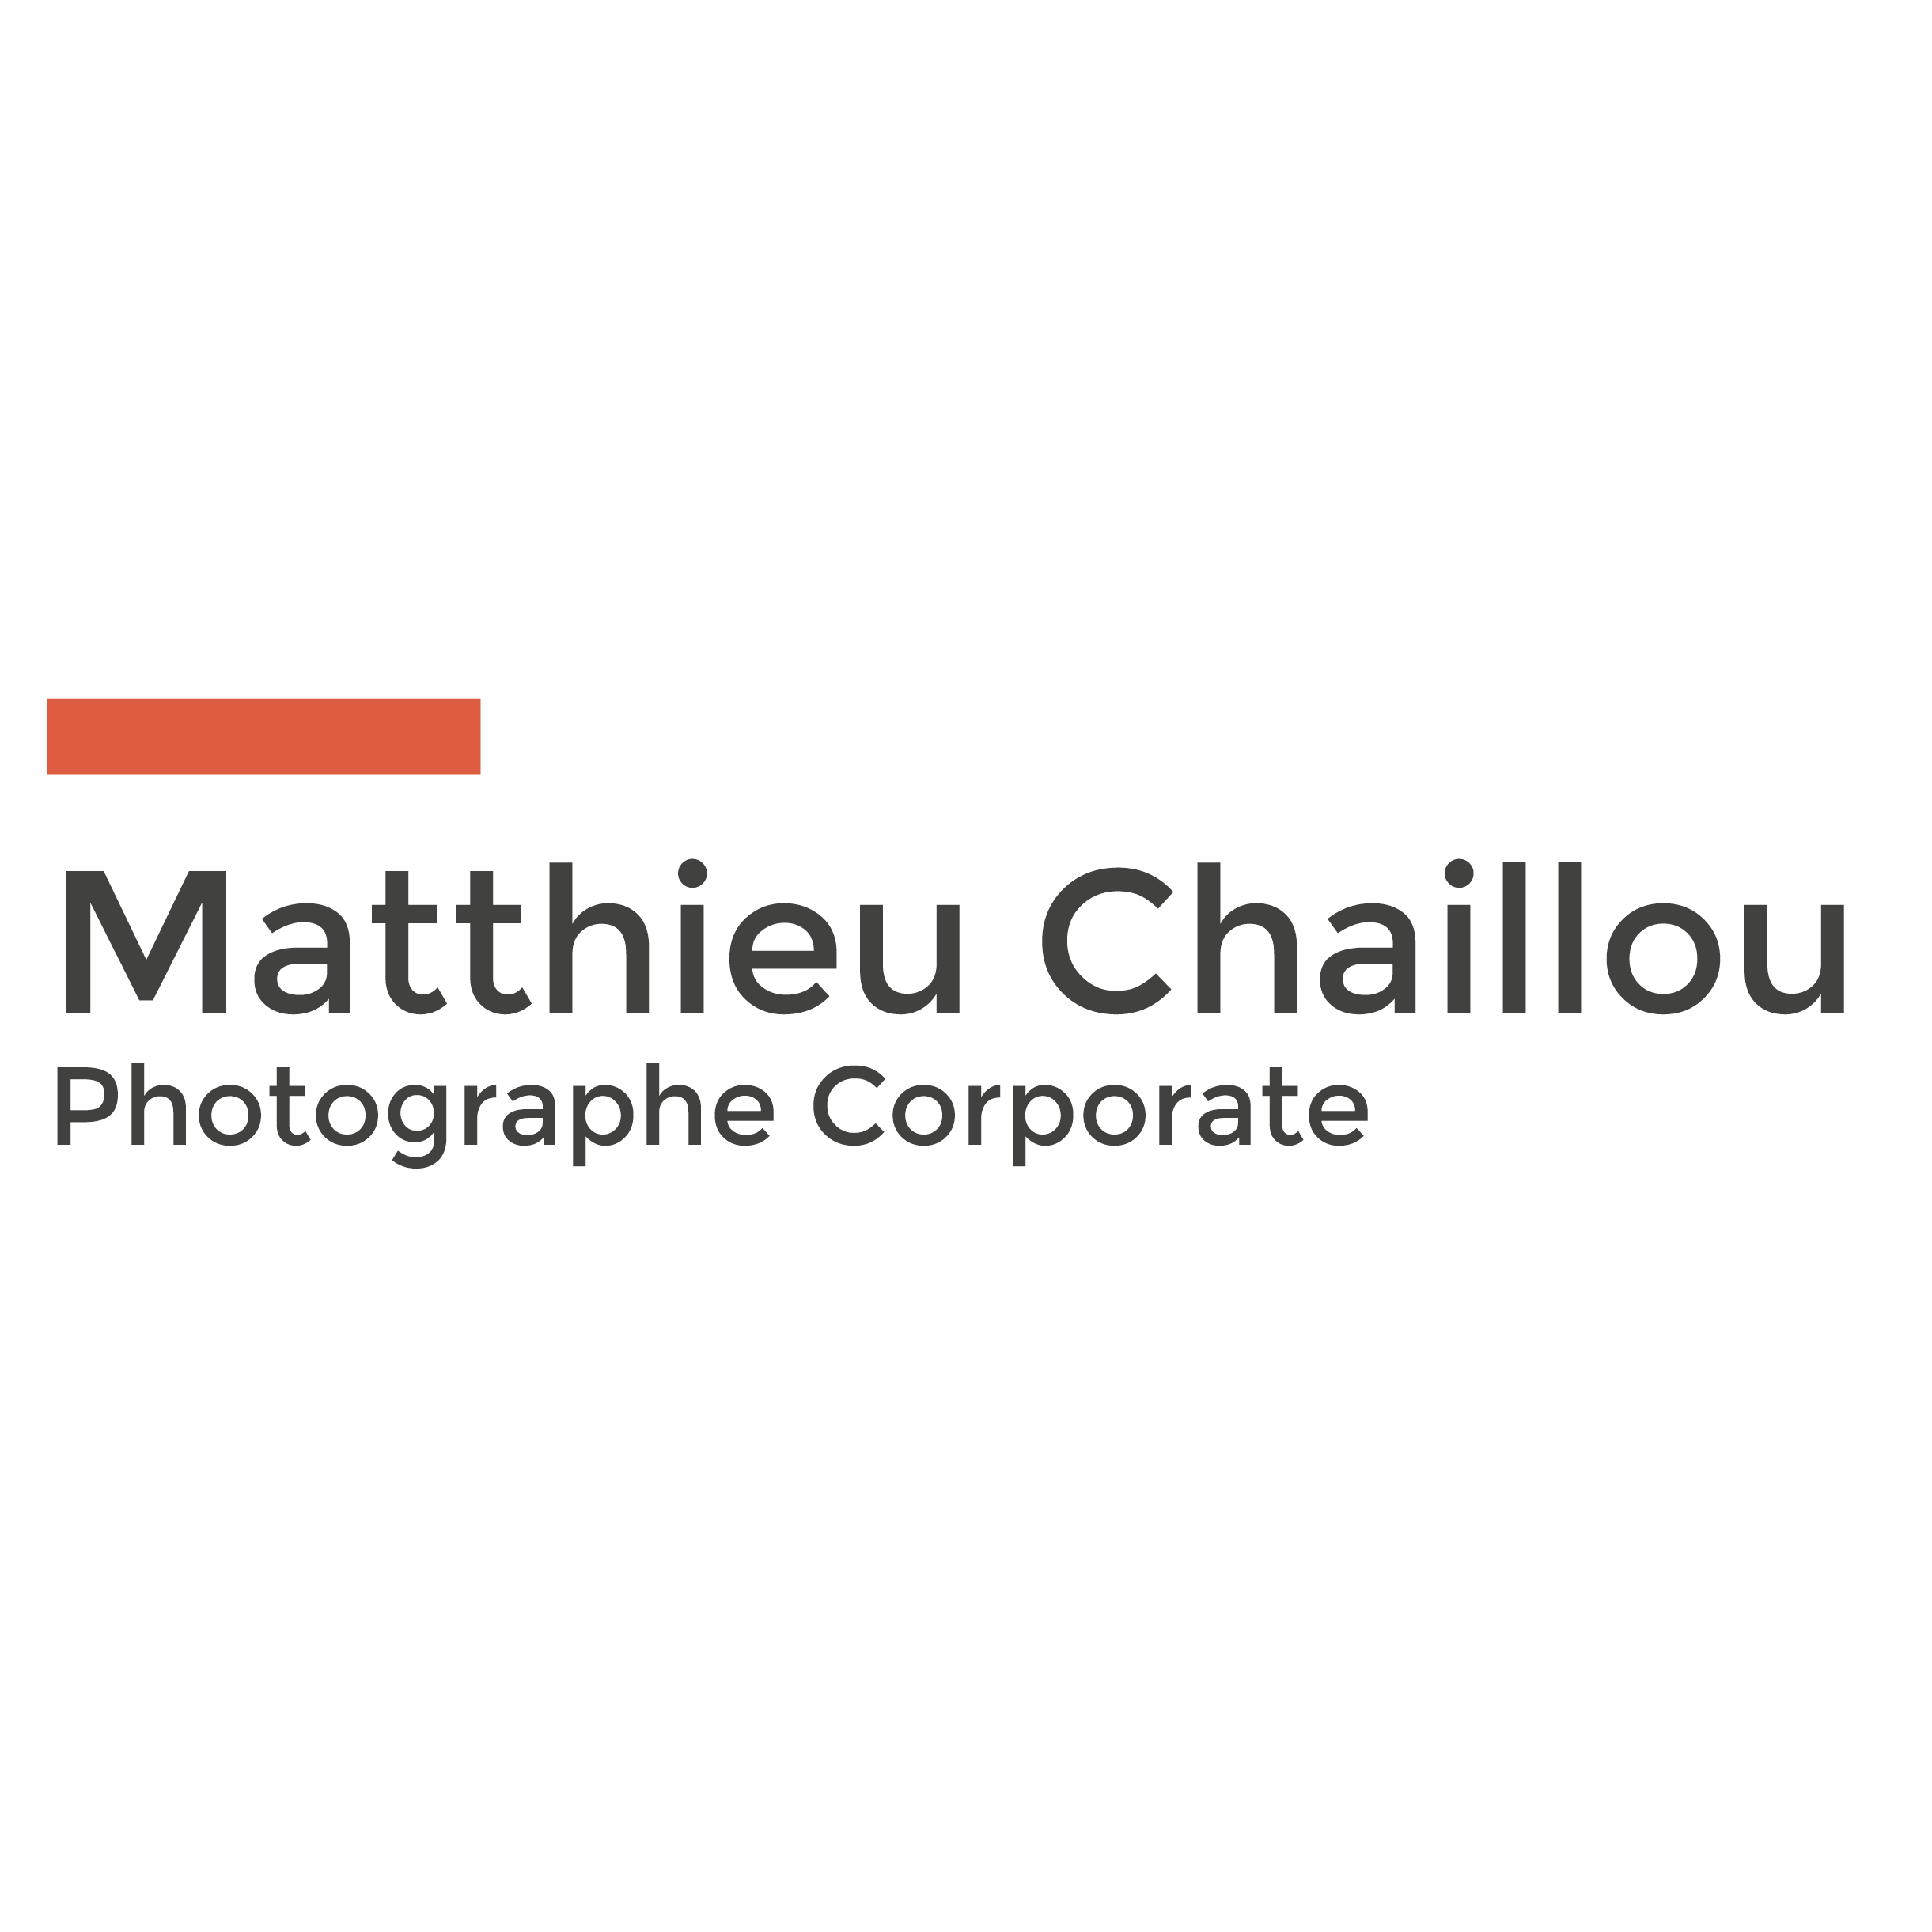 Matthieu Chaillou Photography